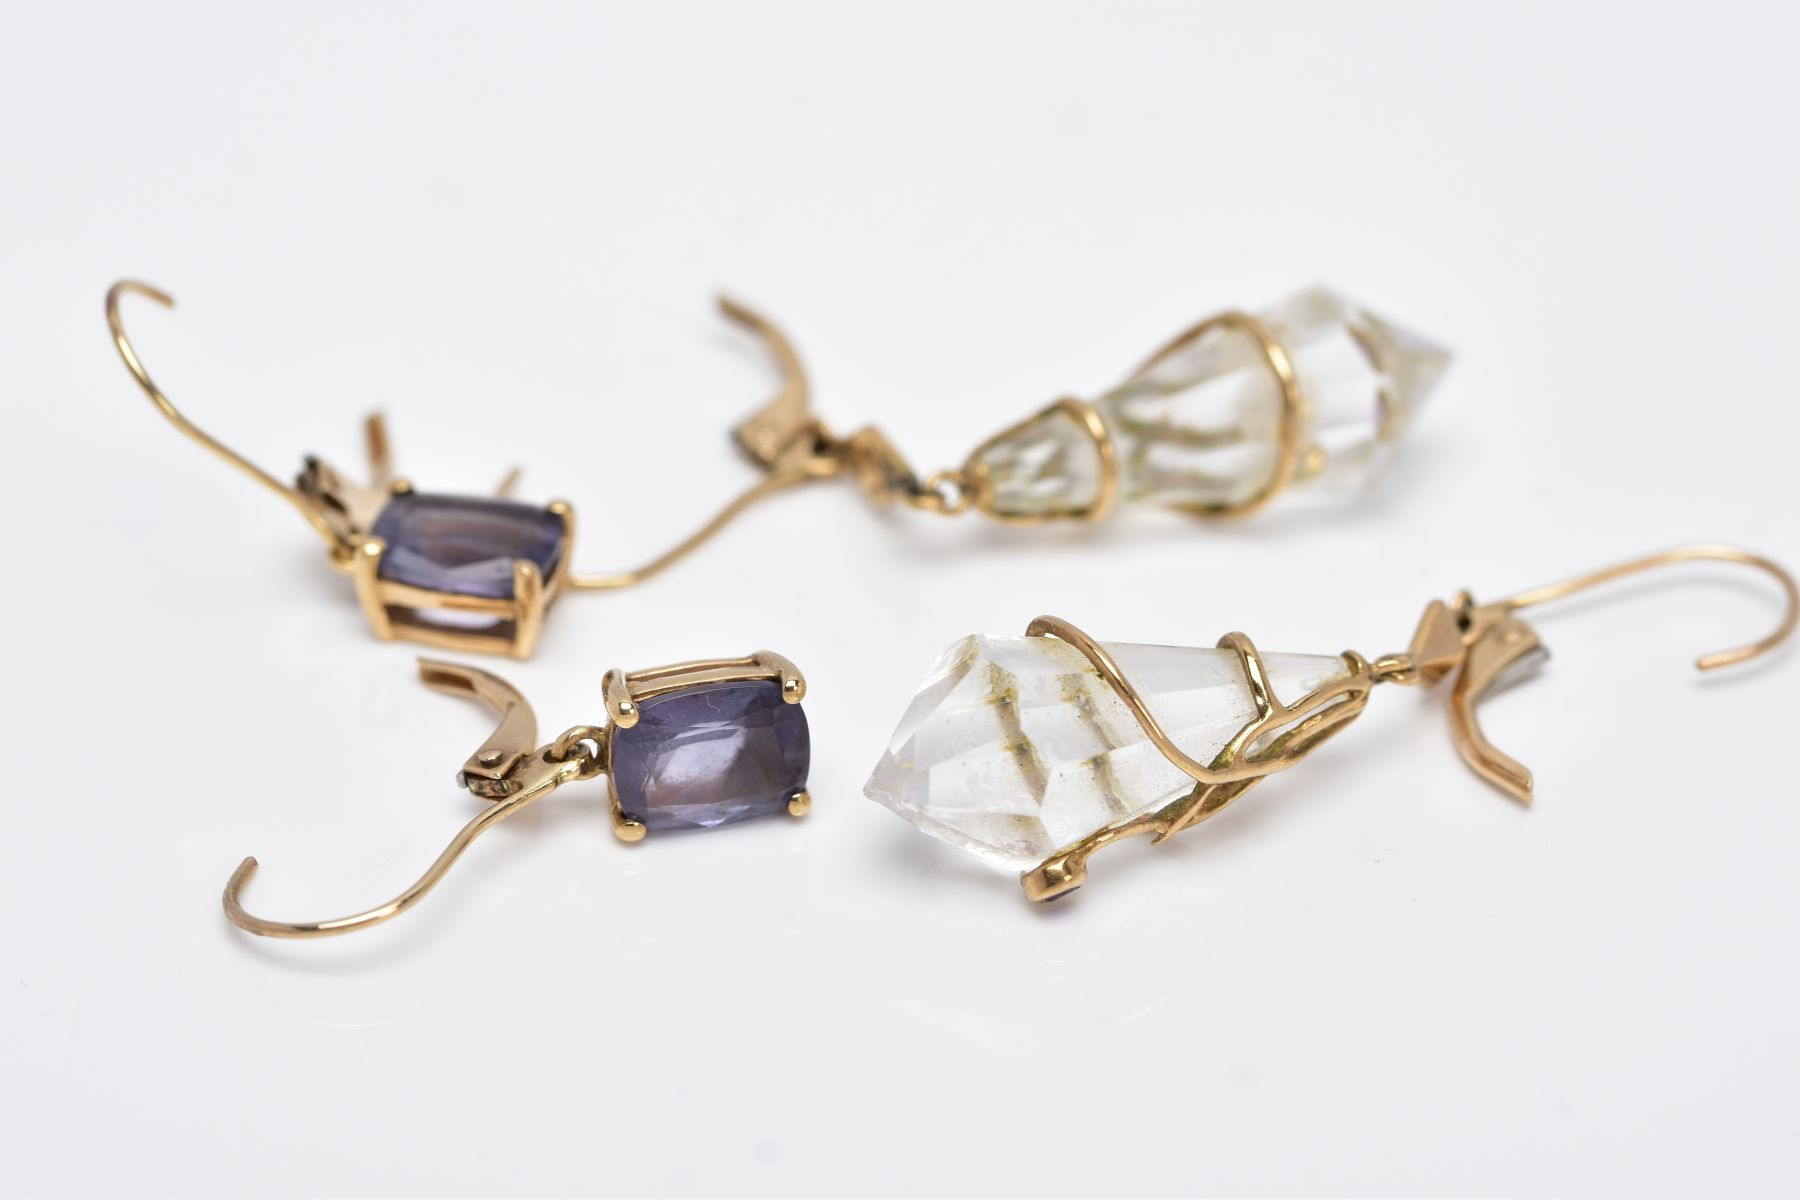 TWO PAIRS OF YELLOW METAL GEMSET DROP EARRINGS, the first pair suspending claw set, oval cut - Image 4 of 4